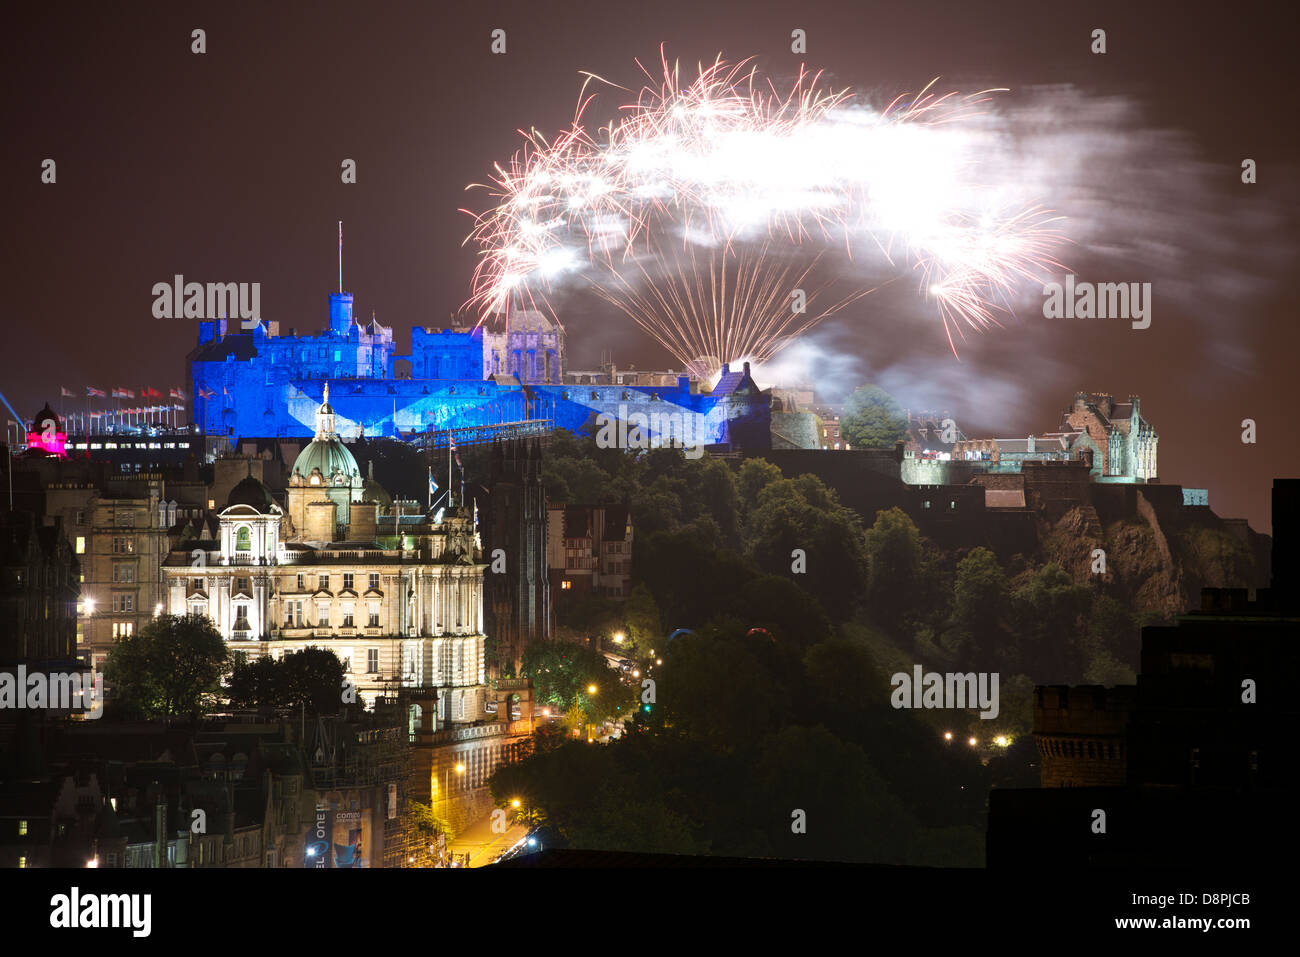 Edinburgh Castle lit during the International Military Tattoo Performance. Stock Photo